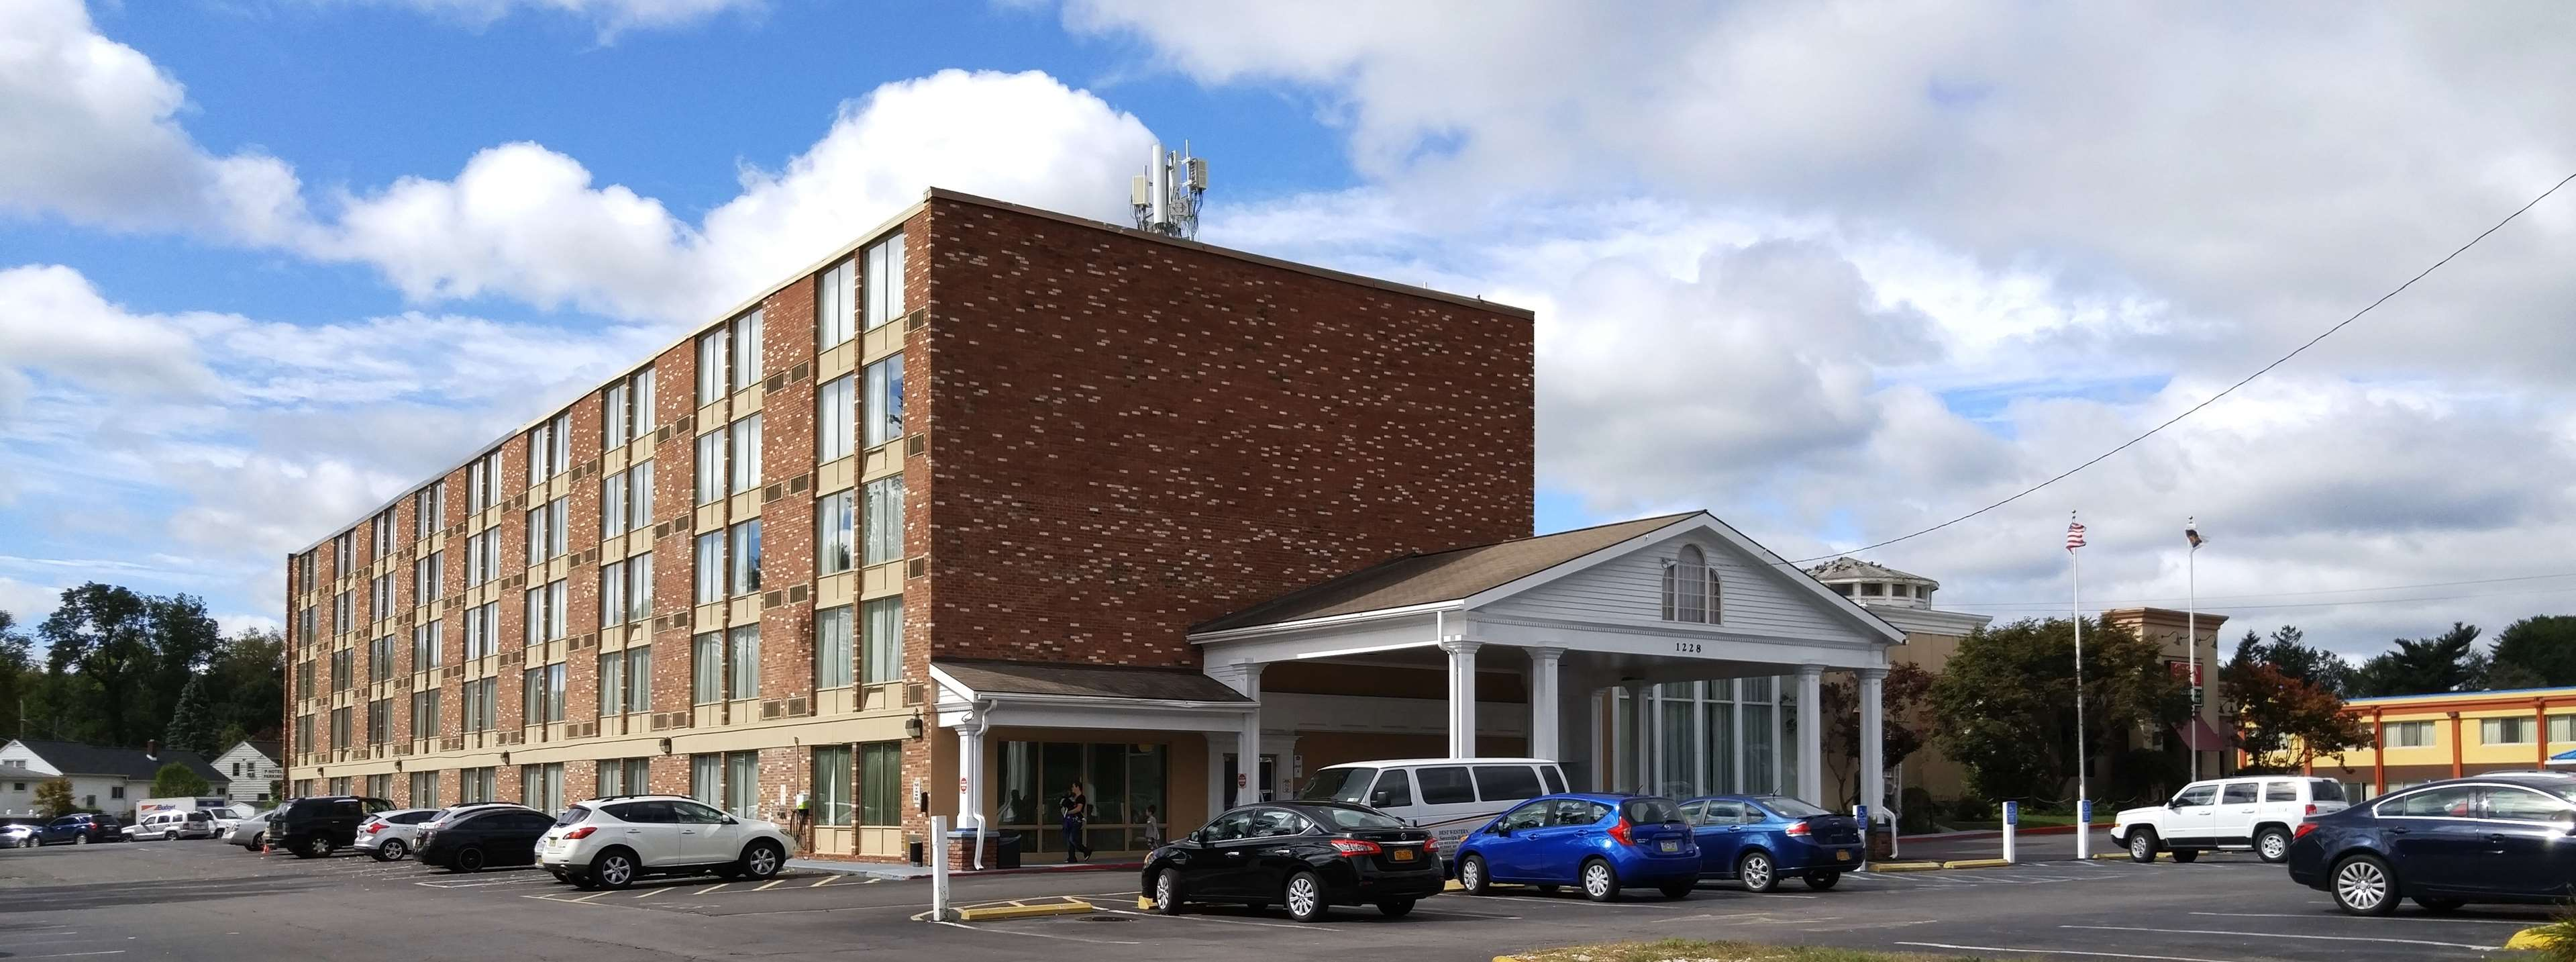 Best Western Hotel Central Ave Albany Ny